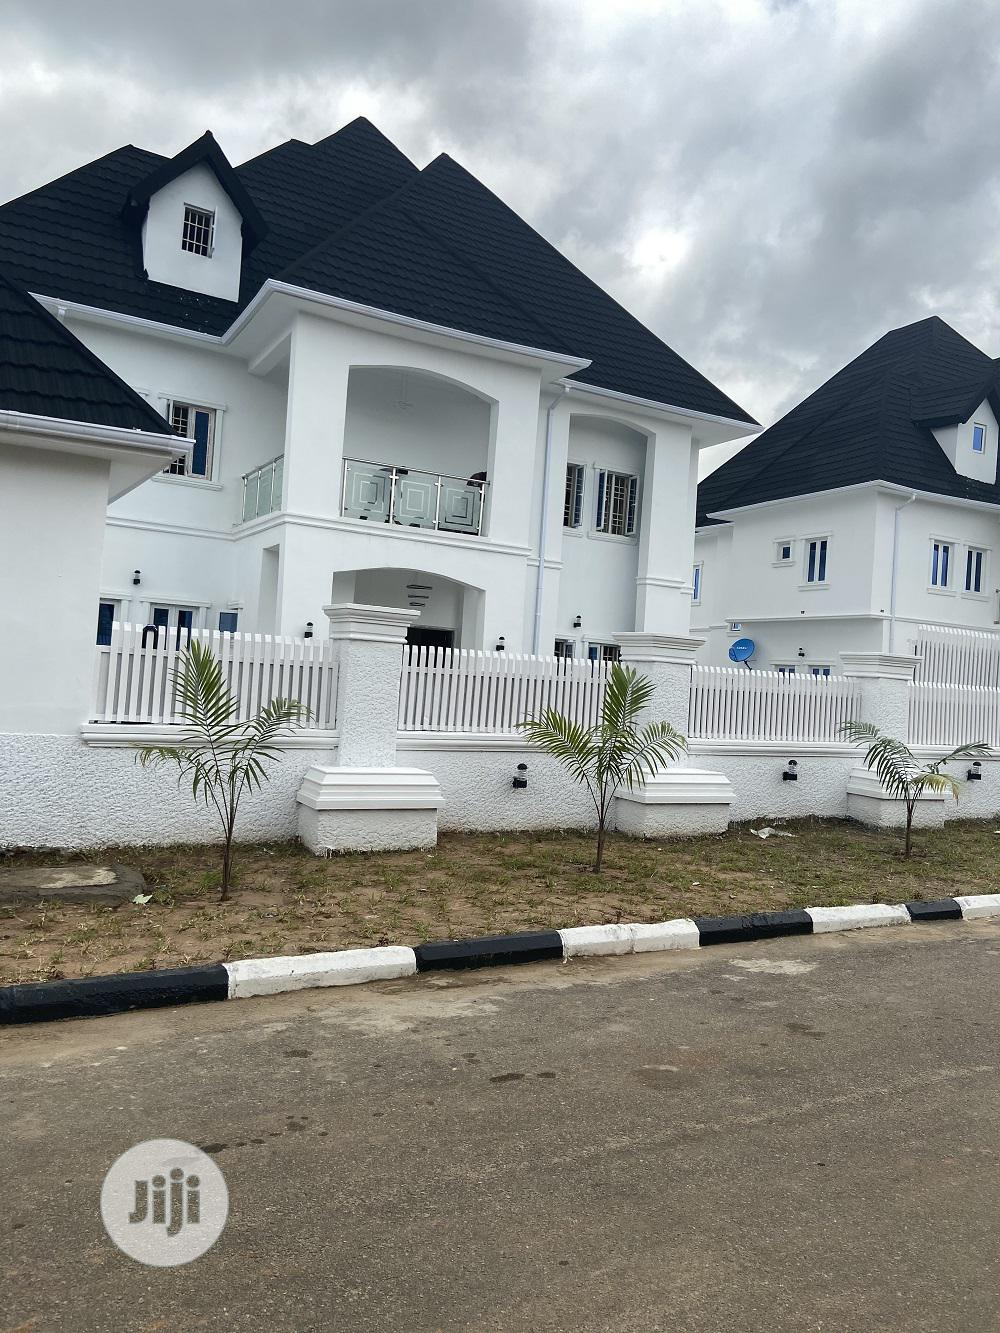 6 Bedroom Fully Detached Duplex, Beautifully Finished With P | Houses & Apartments For Sale for sale in Gwarinpa, Abuja (FCT) State, Nigeria